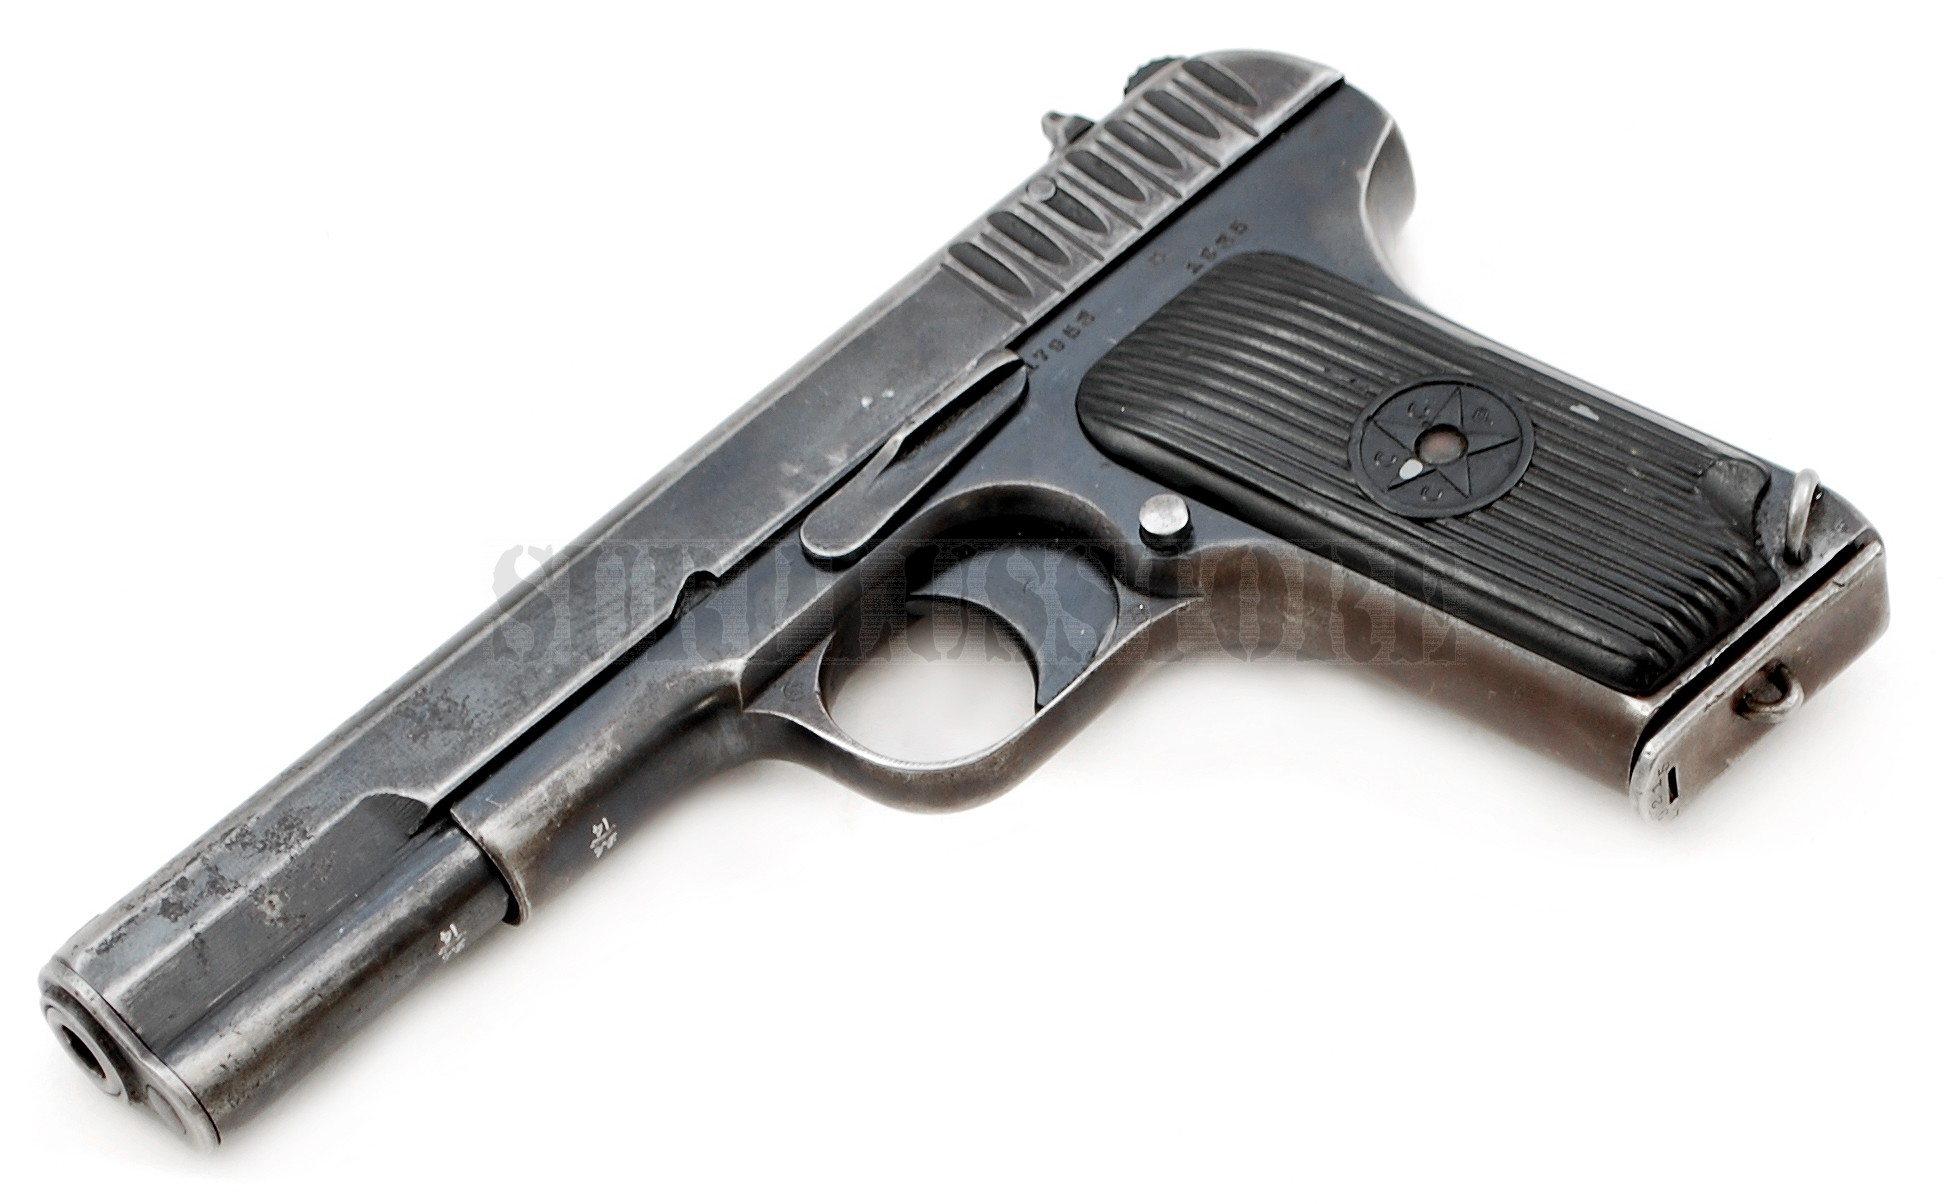 Own A Piece Of History With A Deactivated Gun For Sale | Surplus Store